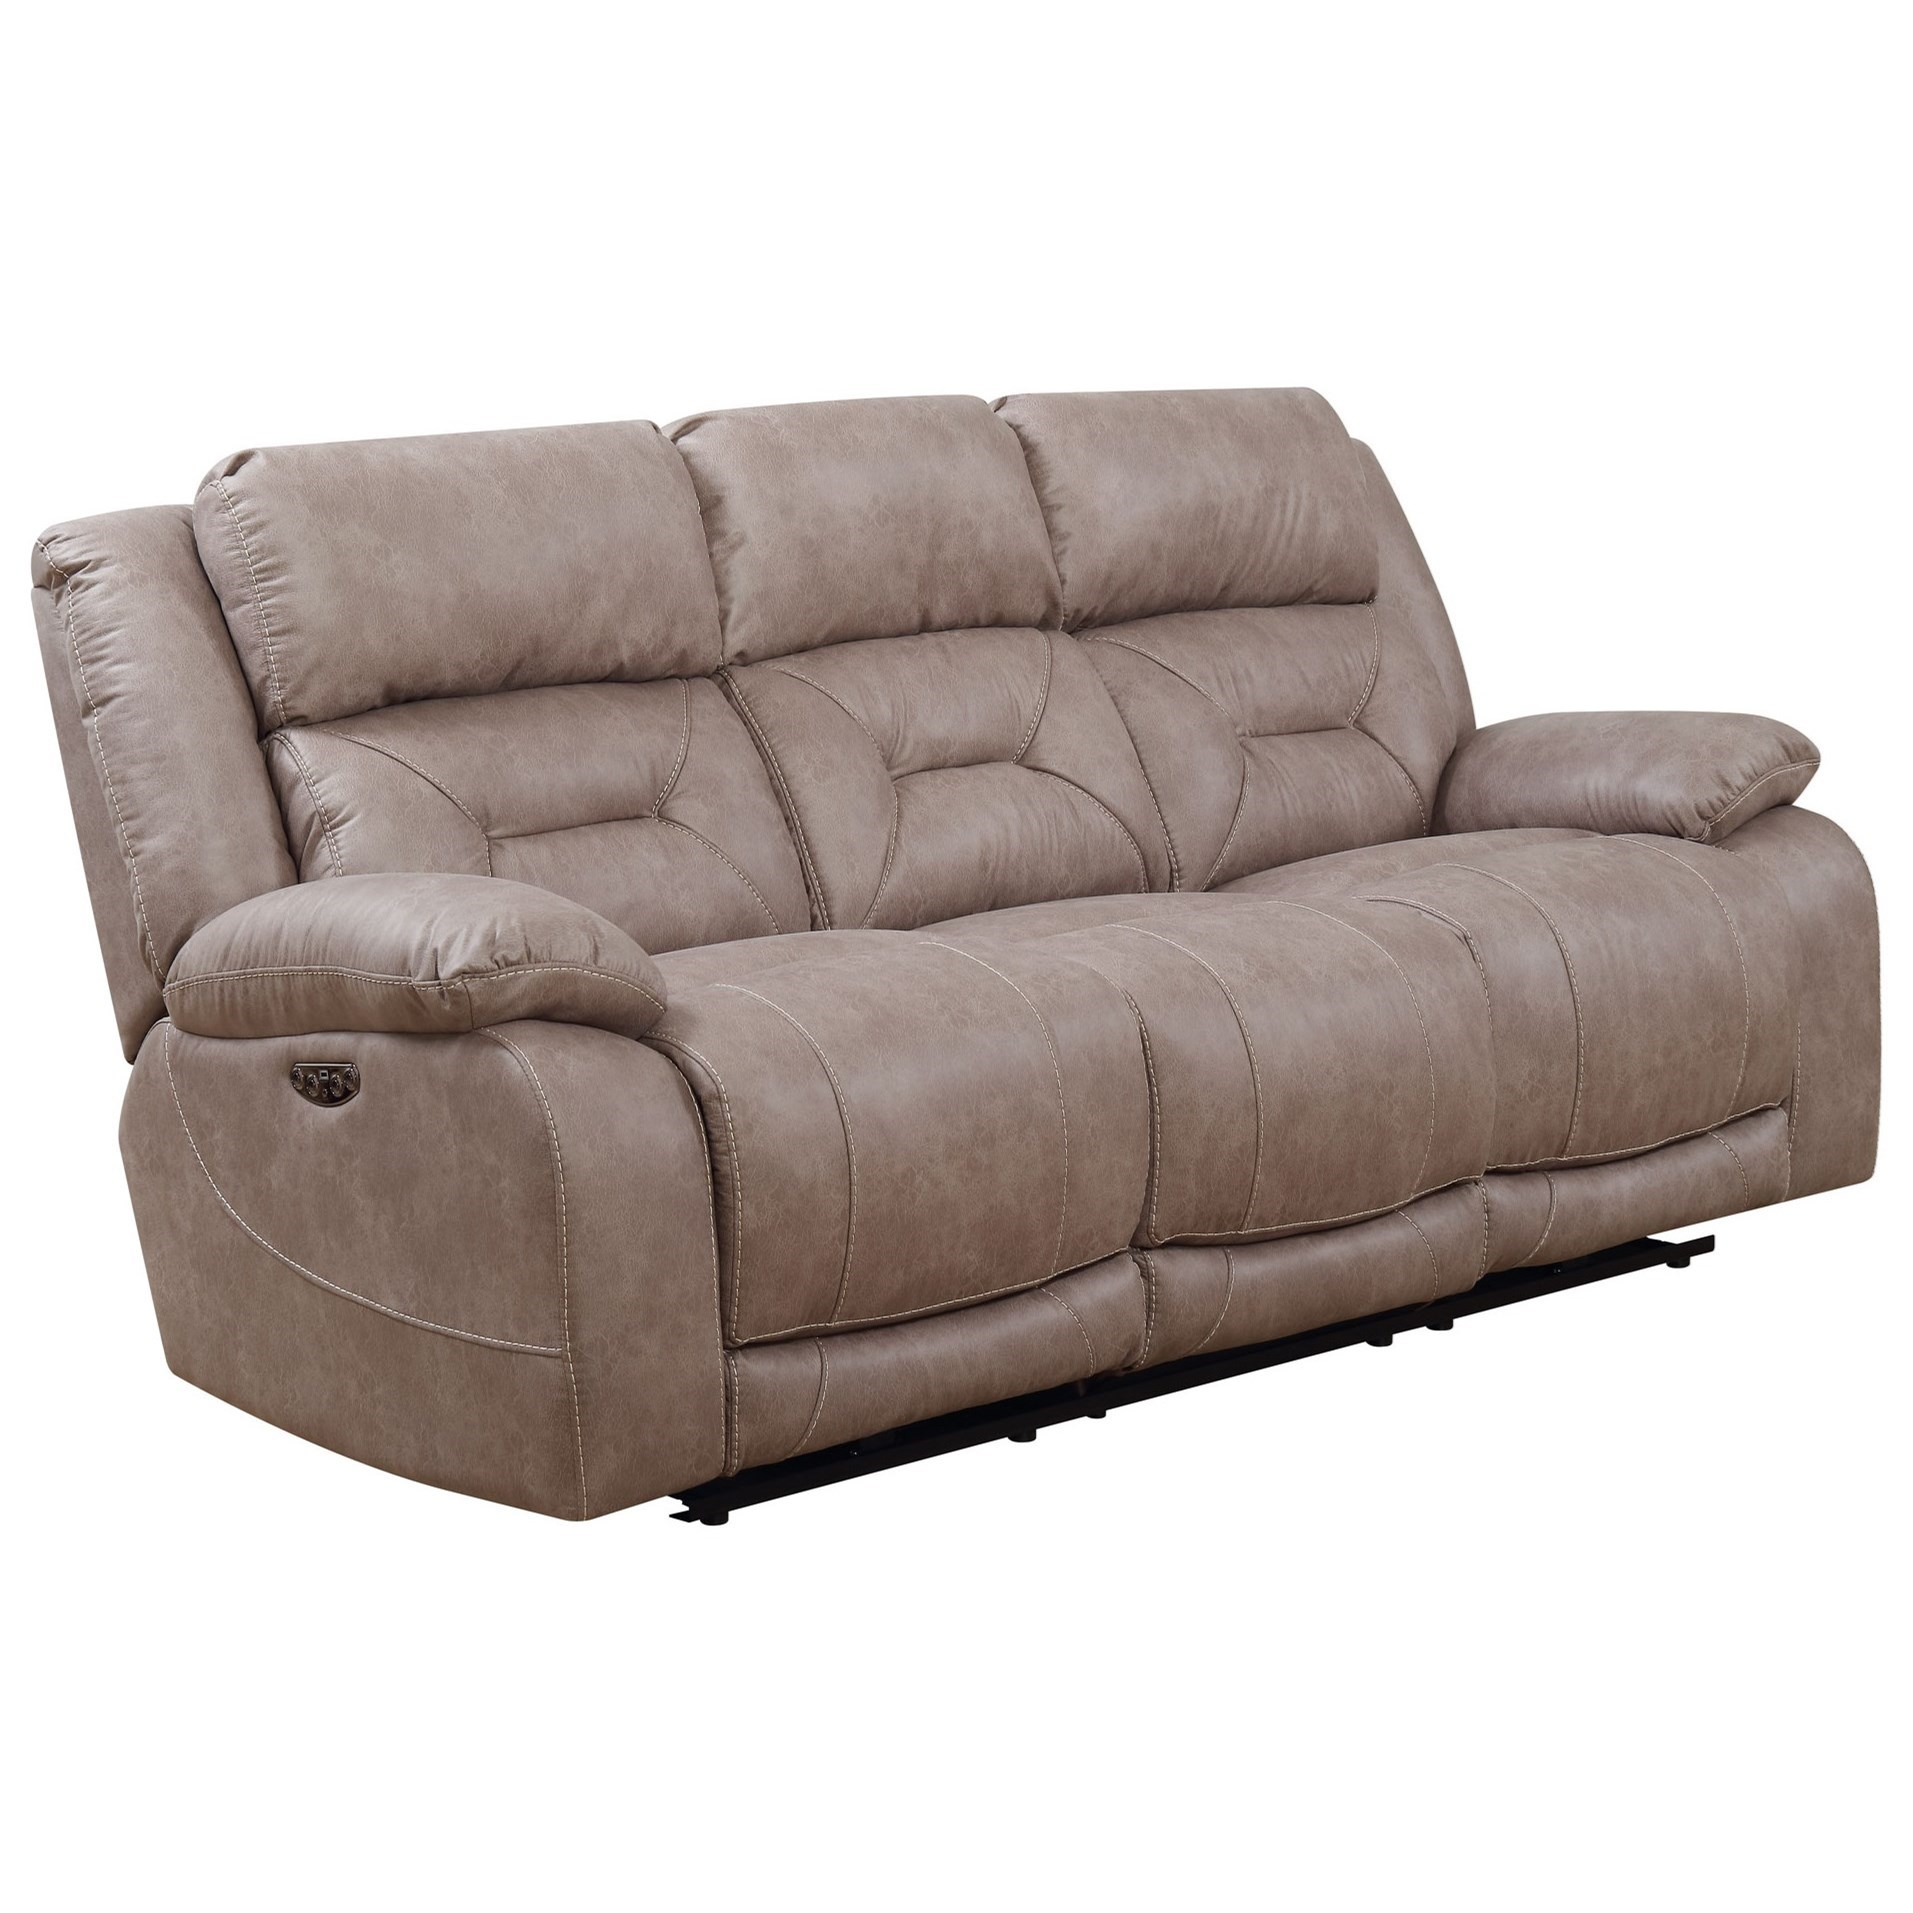 Aria Reclining Sofa by Steve Silver at Northeast Factory Direct